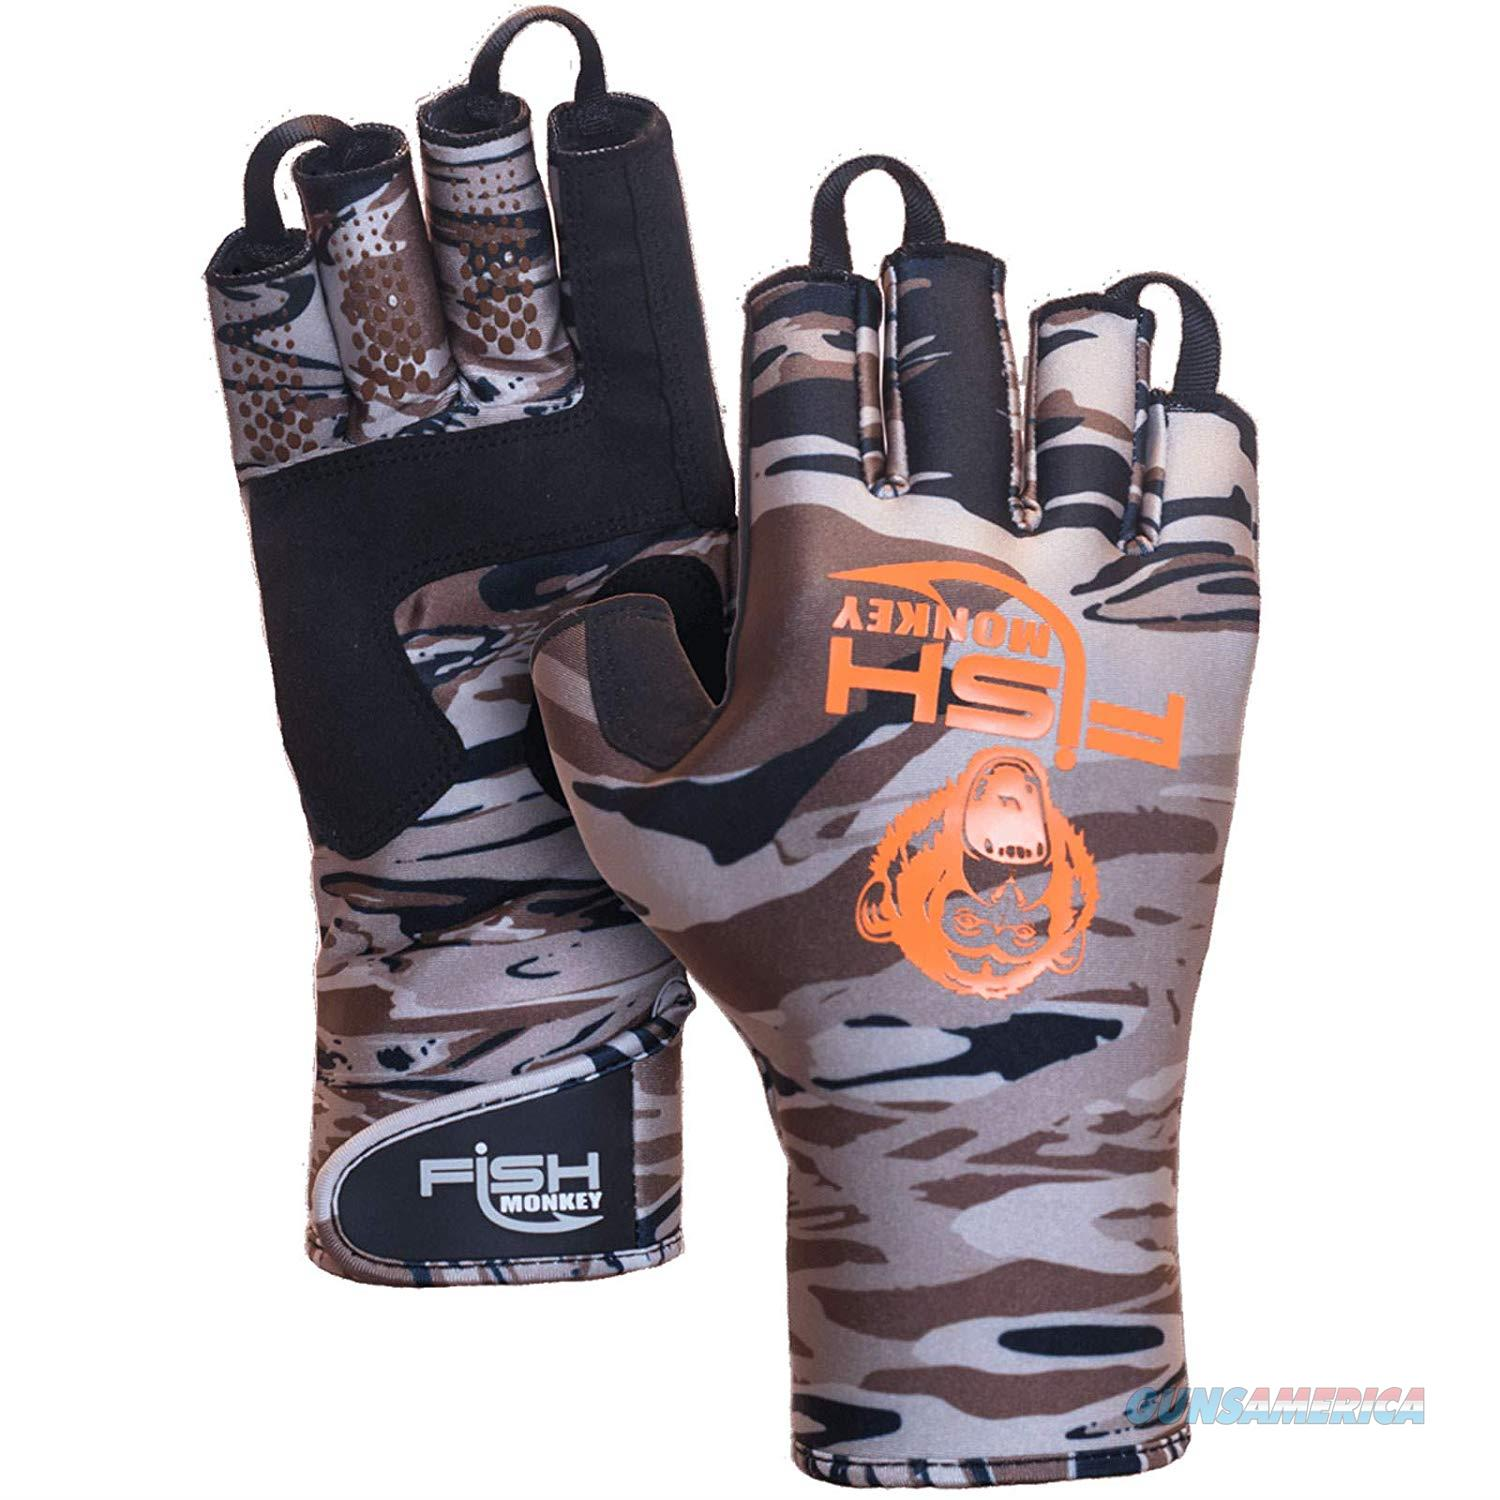 Fish Monkey Backcountry II Glove 2XL  Non-Guns > Hunting Clothing and Equipment > Clothing > Gloves